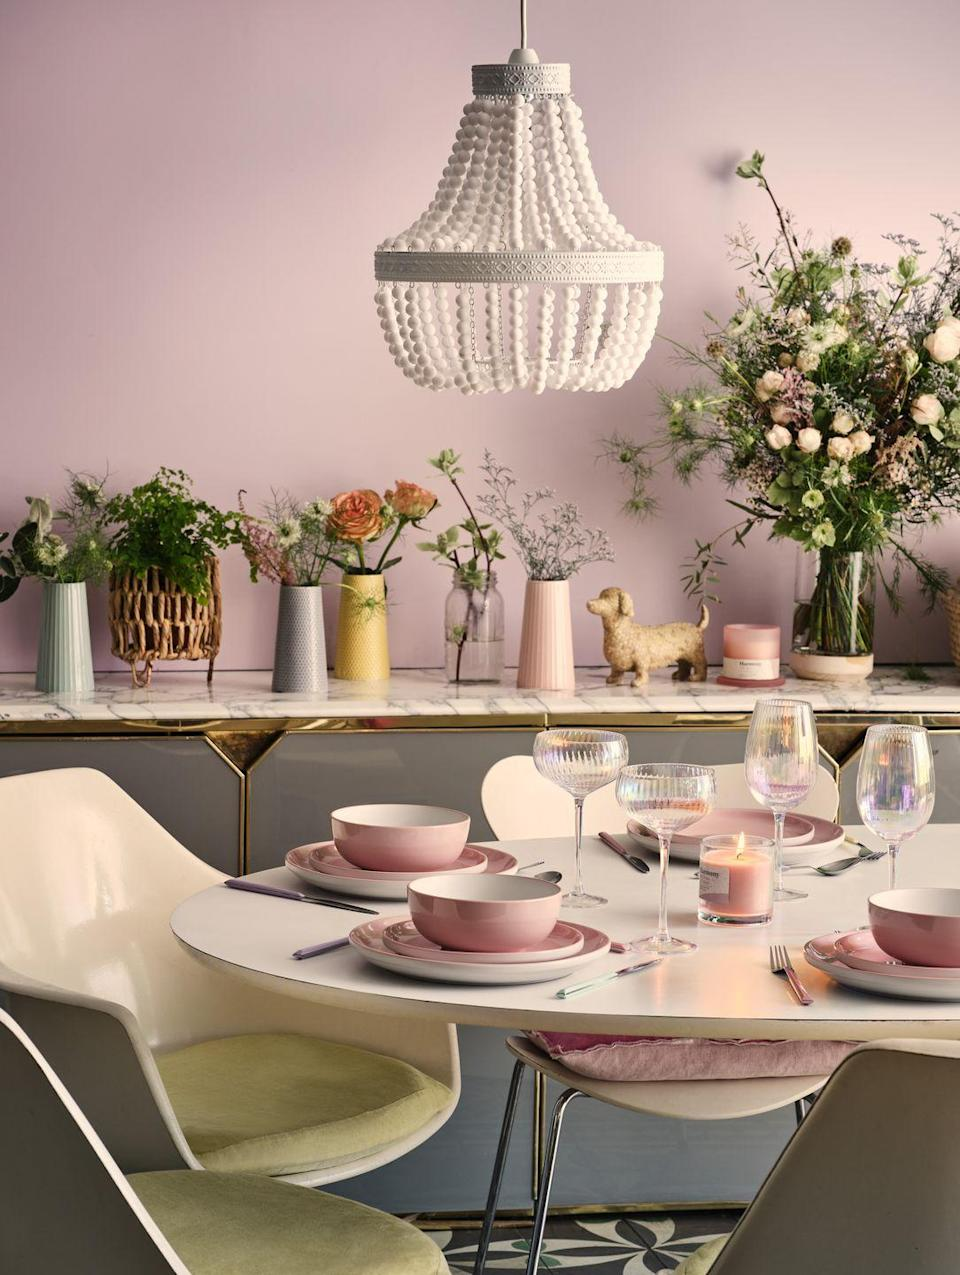 """<p>'A playful and thrifty trend, English Weekend uses vintage florals and pretty pastels with a Scandinavian nod,' say George Home. 'Rattans, coloured glass and chunky knits combine with positive slogans and boho finishes for a mix and match style.'</p><p><a class=""""link rapid-noclick-resp"""" href=""""https://direct.asda.com/george/home/D26,default,sc.html"""" rel=""""nofollow noopener"""" target=""""_blank"""" data-ylk=""""slk:SHOP NOW"""">SHOP NOW</a></p>"""